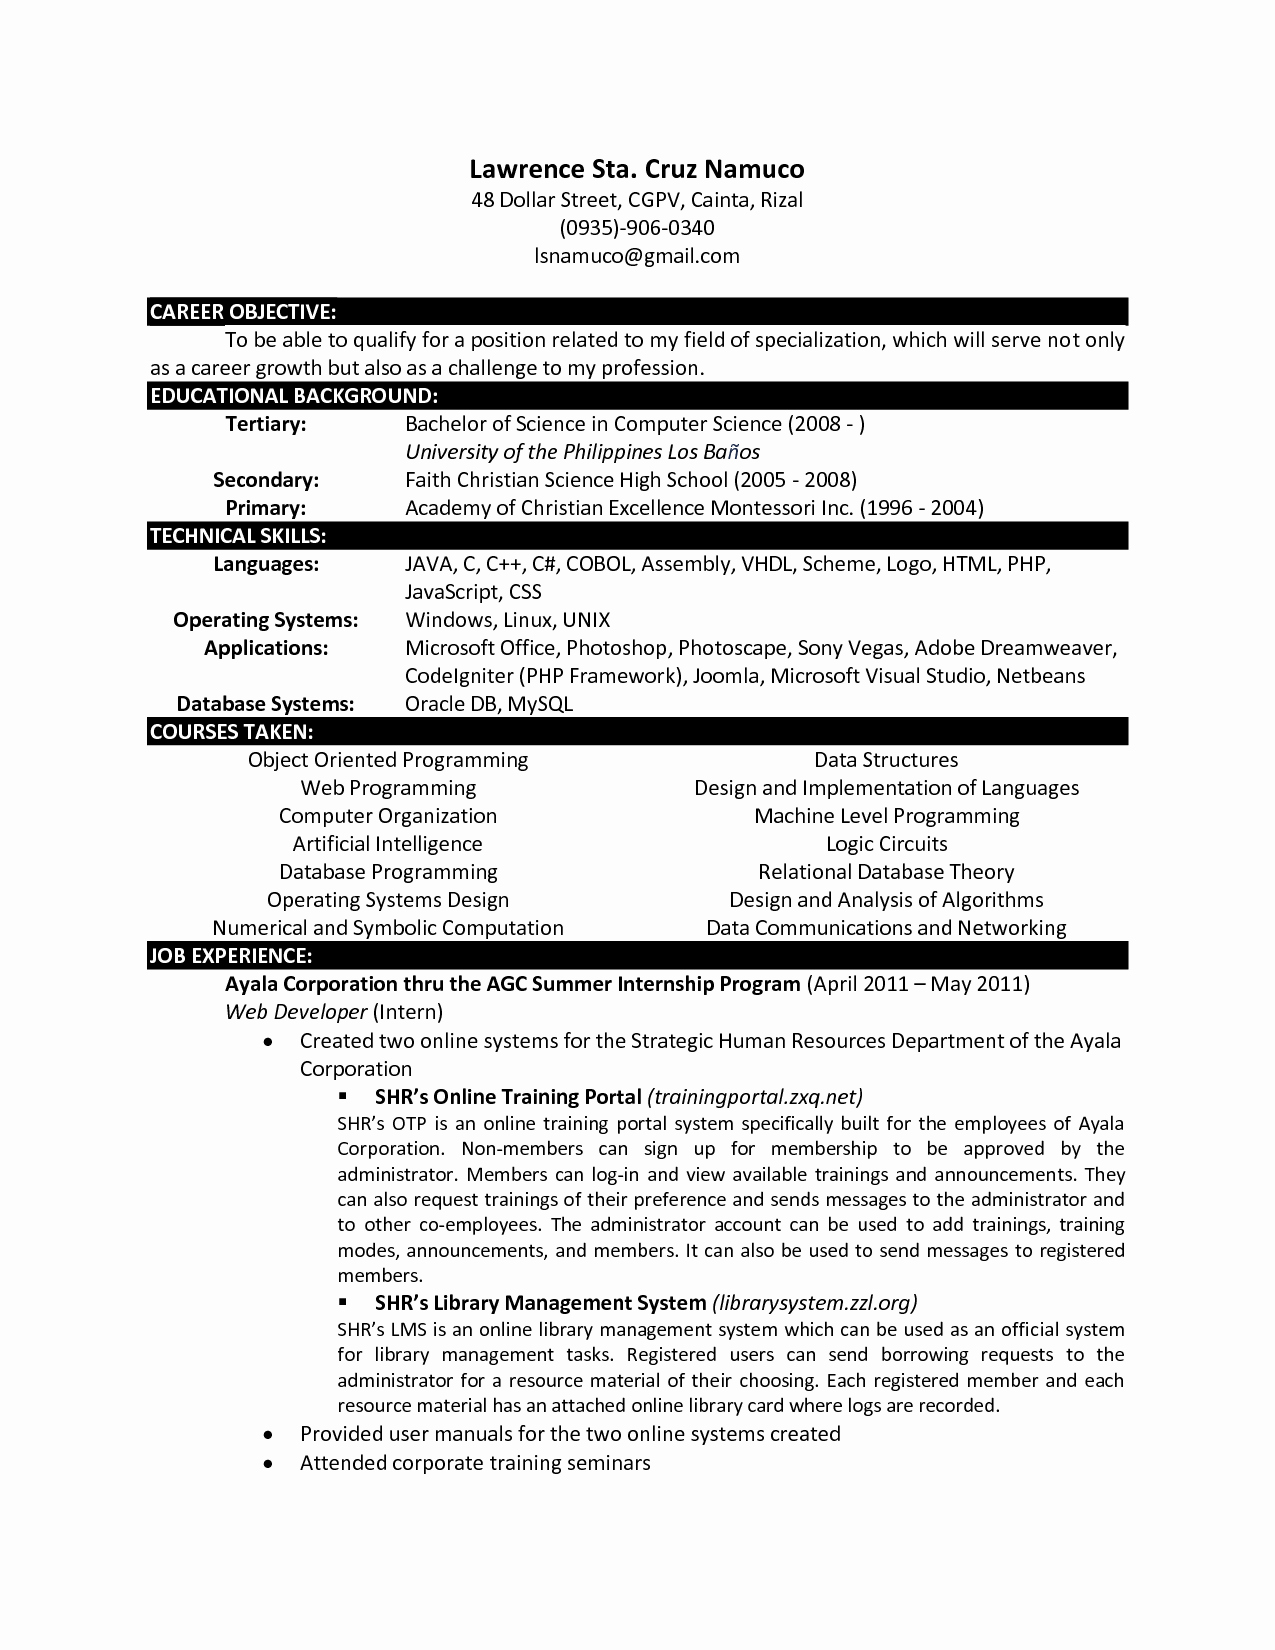 Computer Science Resume Template Lovely Puter Science Resume Templates